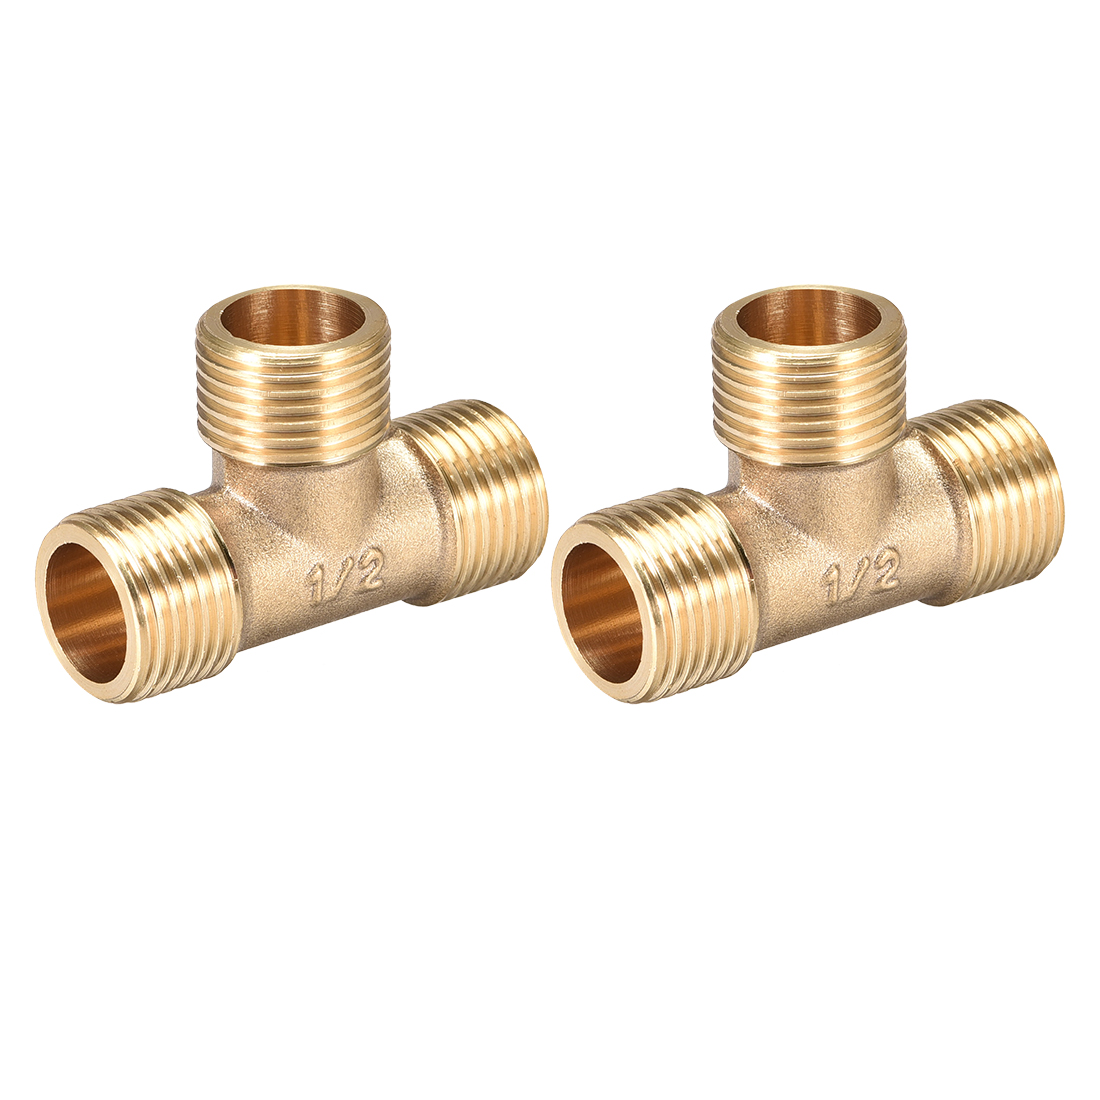 Brass Tee Pipe Fitting G1/2 Male Thread T Shaped Connector Coupler 2pcs